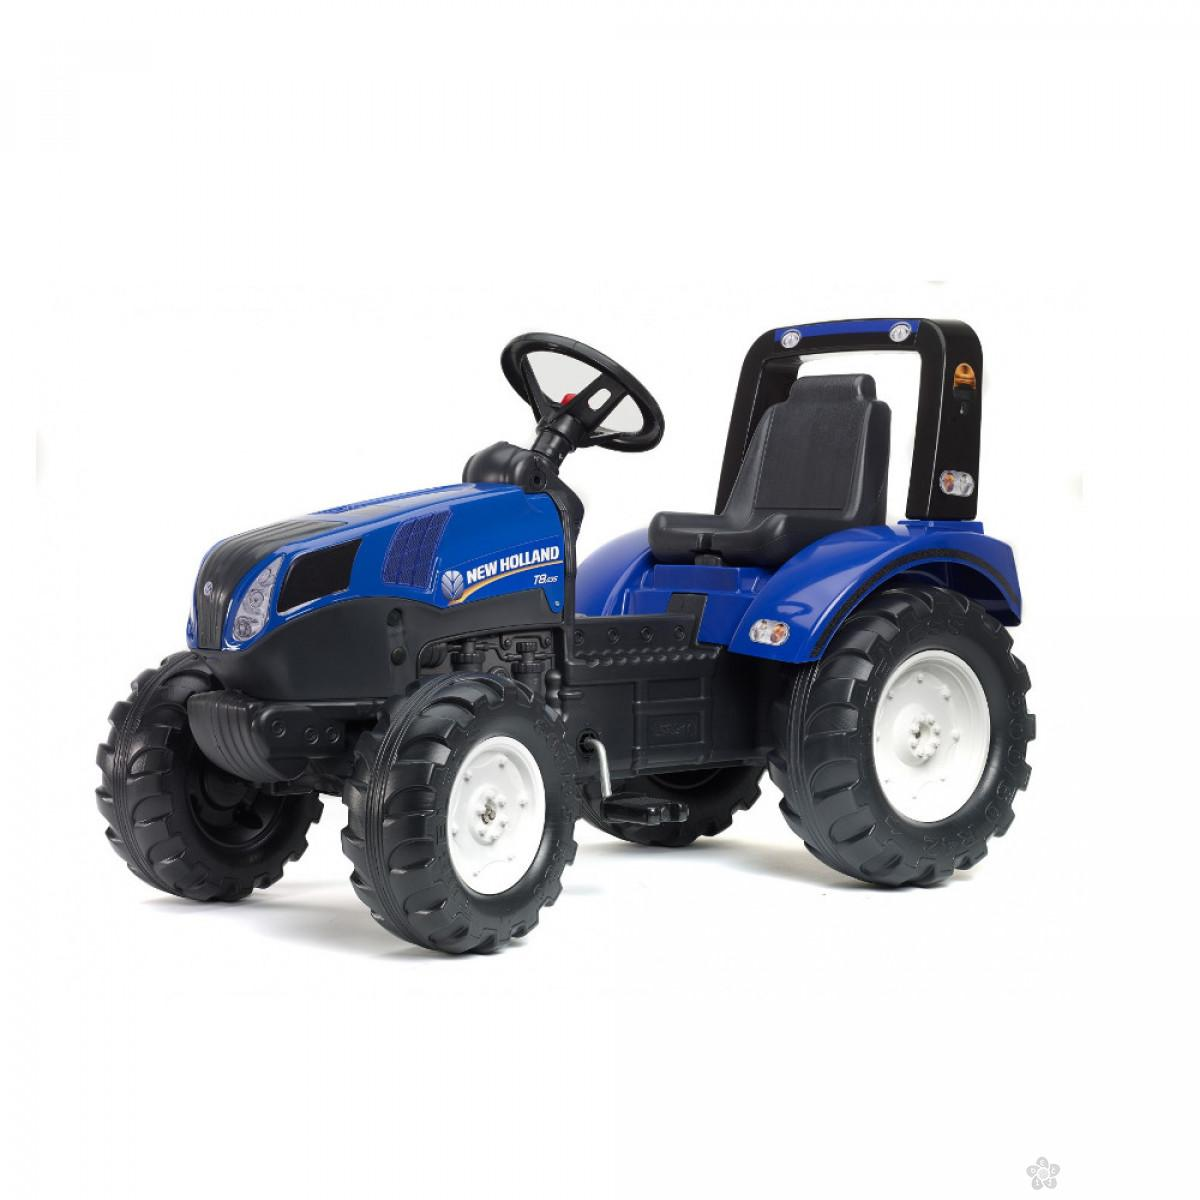 Guralica Falk New Holland solo 3090